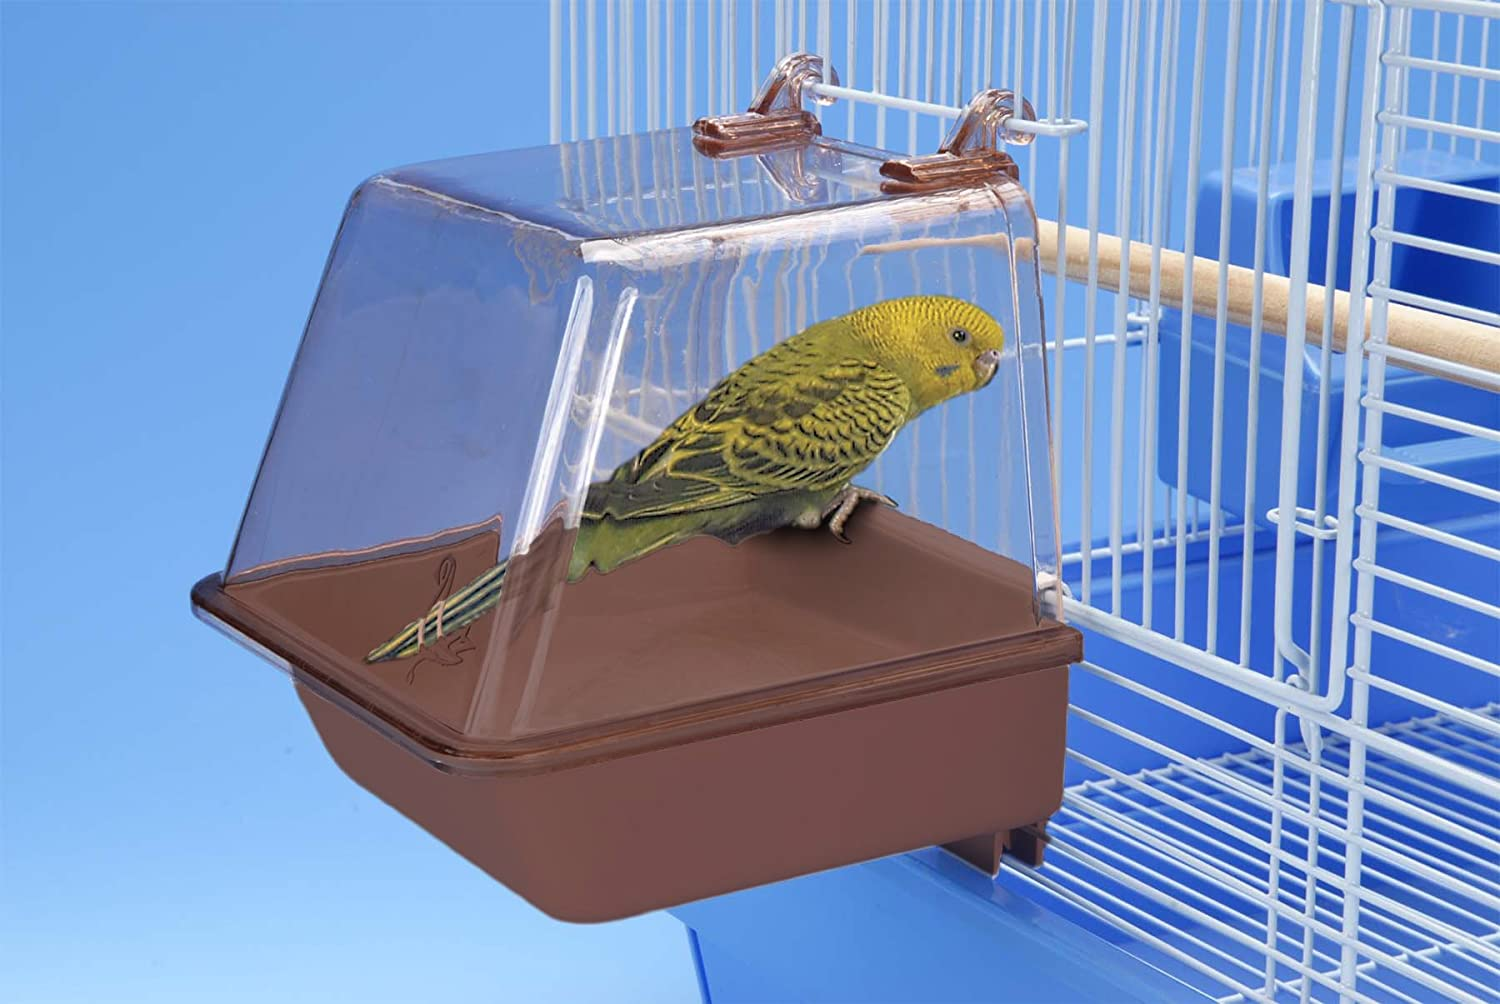 Penn Plax Clip-On Bird Bath – Comes With Universal Clips to Attach to Most Birdcages, 5.5 x 5.75 x 3.75 Inches : Bird Cage Supplies : Pet Supplies